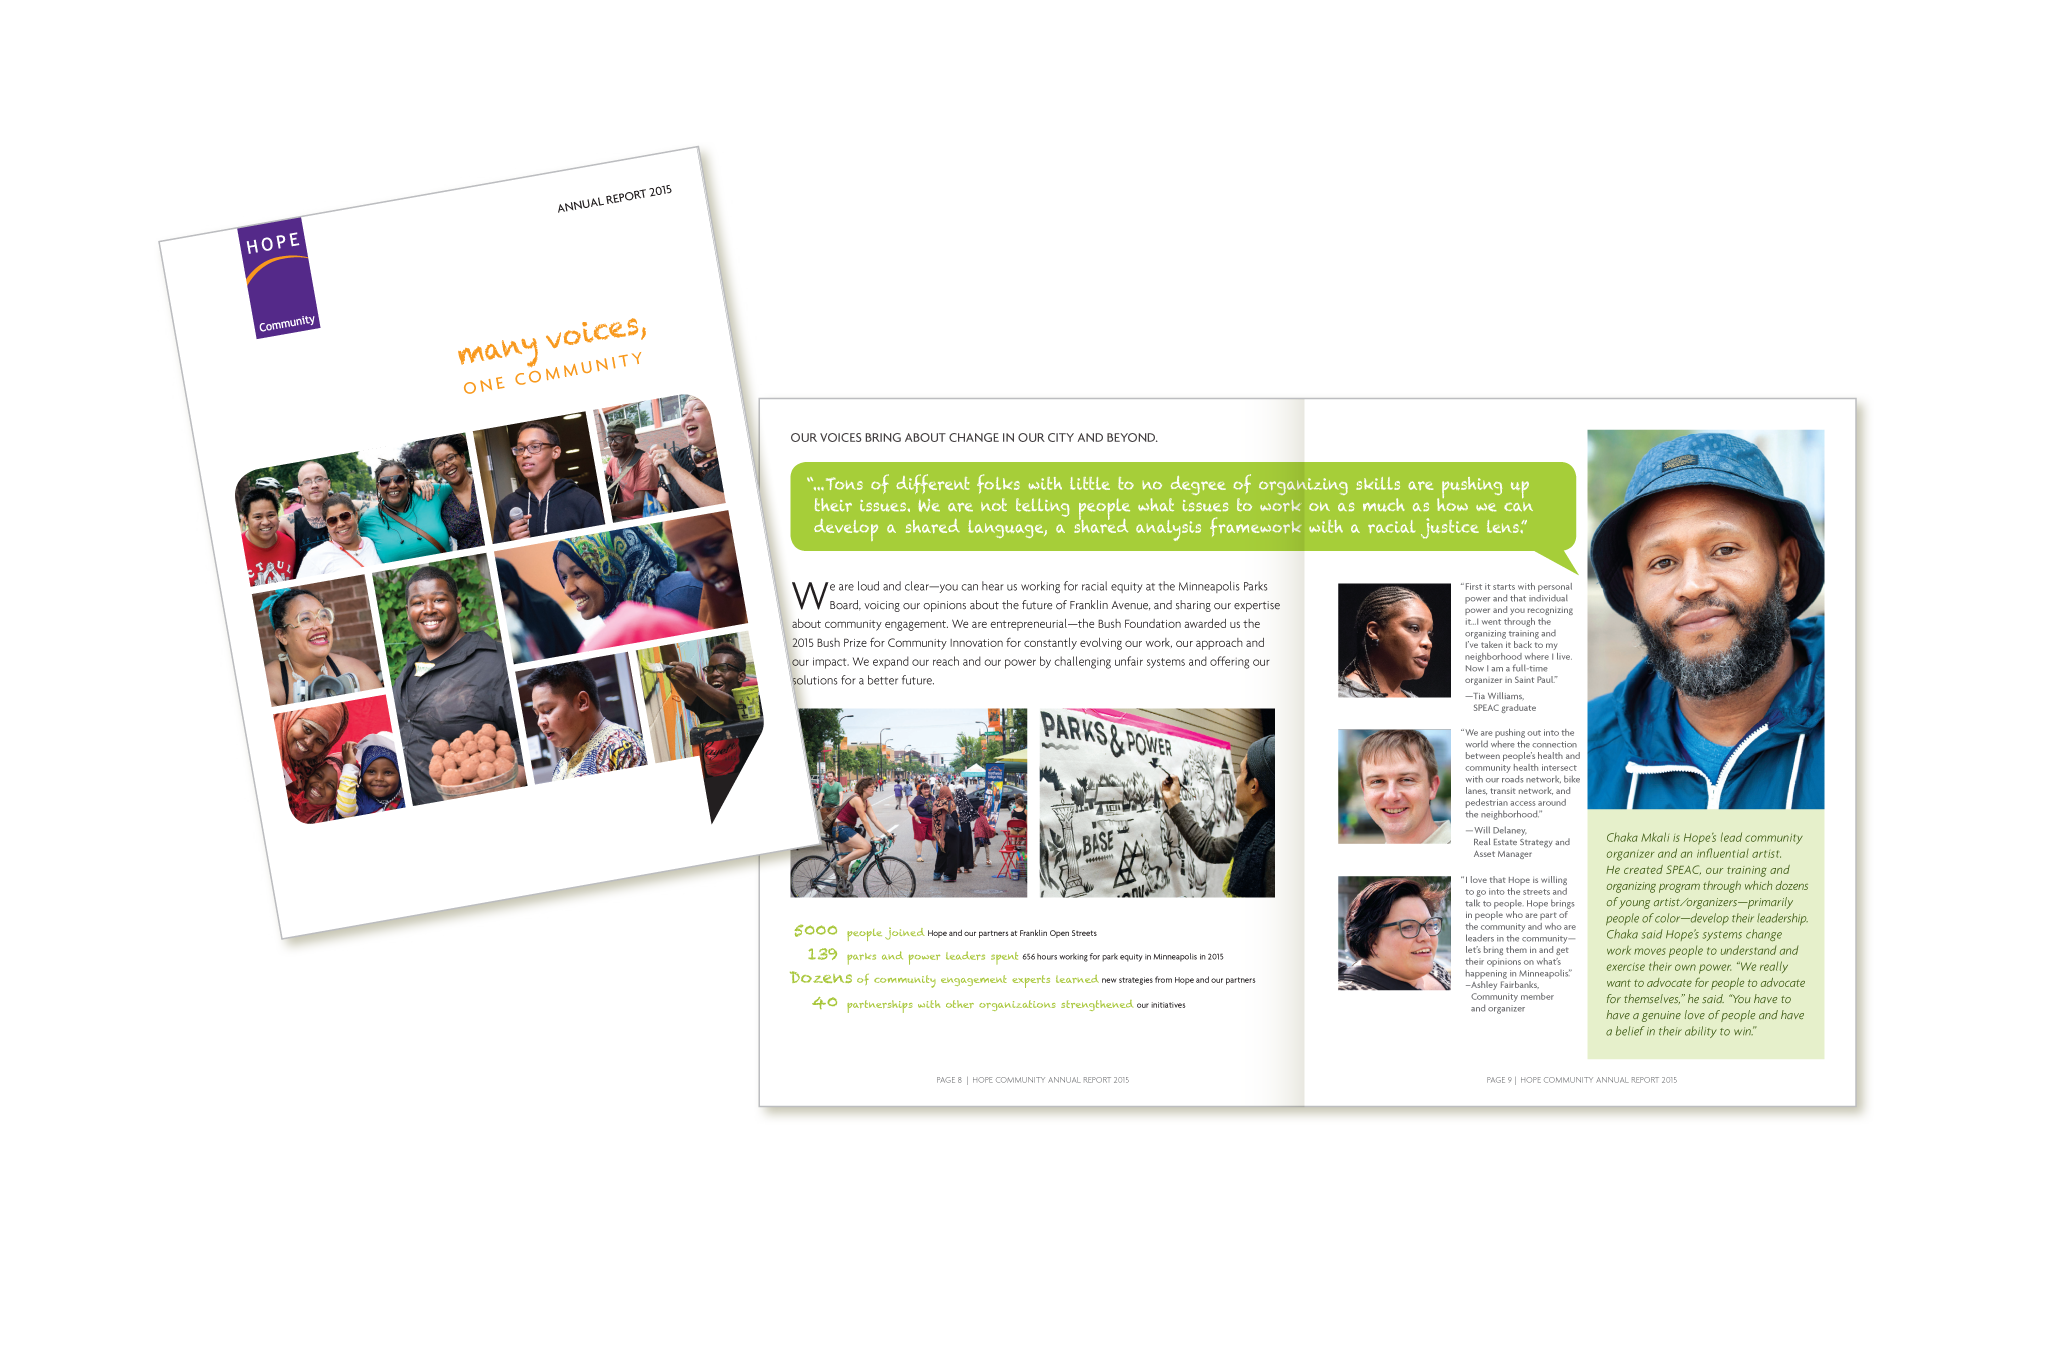 Hope Community 2015 Annual Report